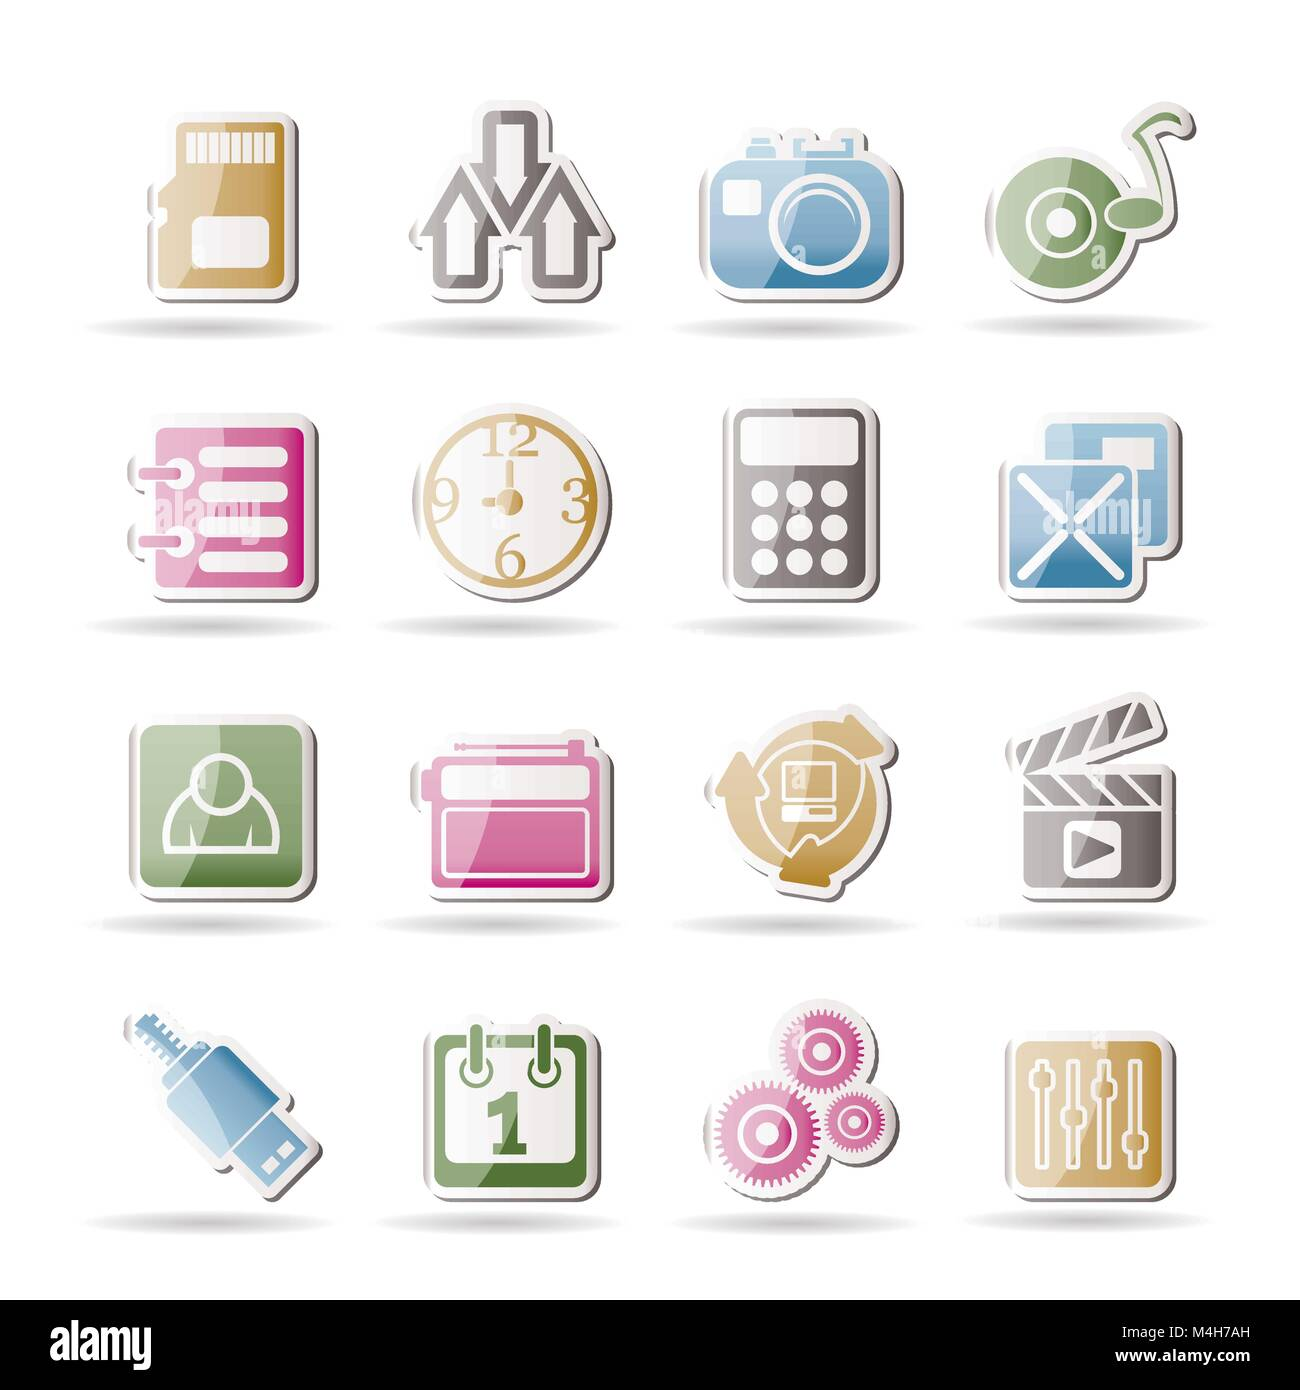 phone performance, internet and office icons - vector icon set - Stock Image